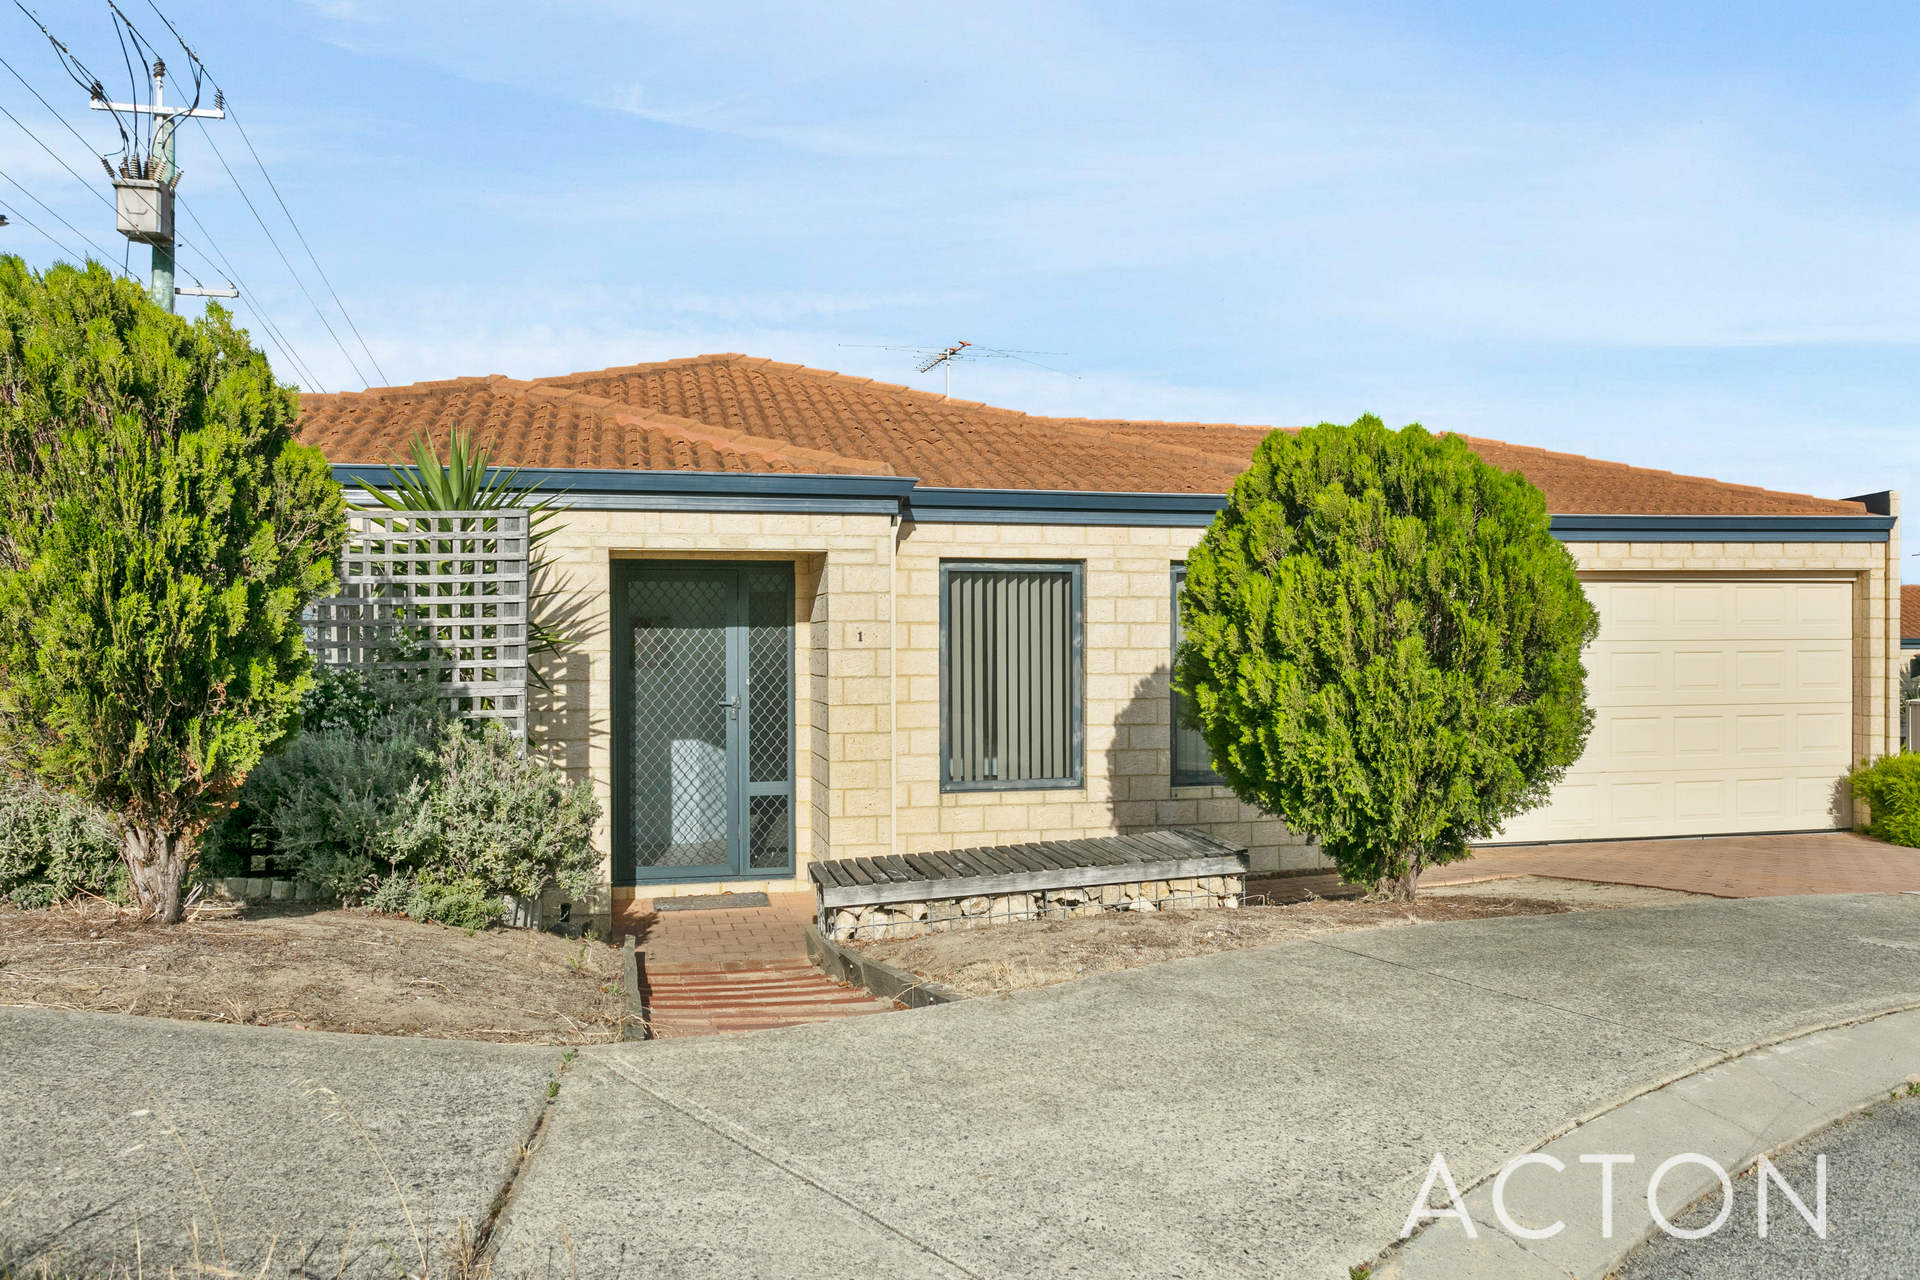 1/24 Bonito Place Yangebup - House For Sale - 22684195 - ACTON Central